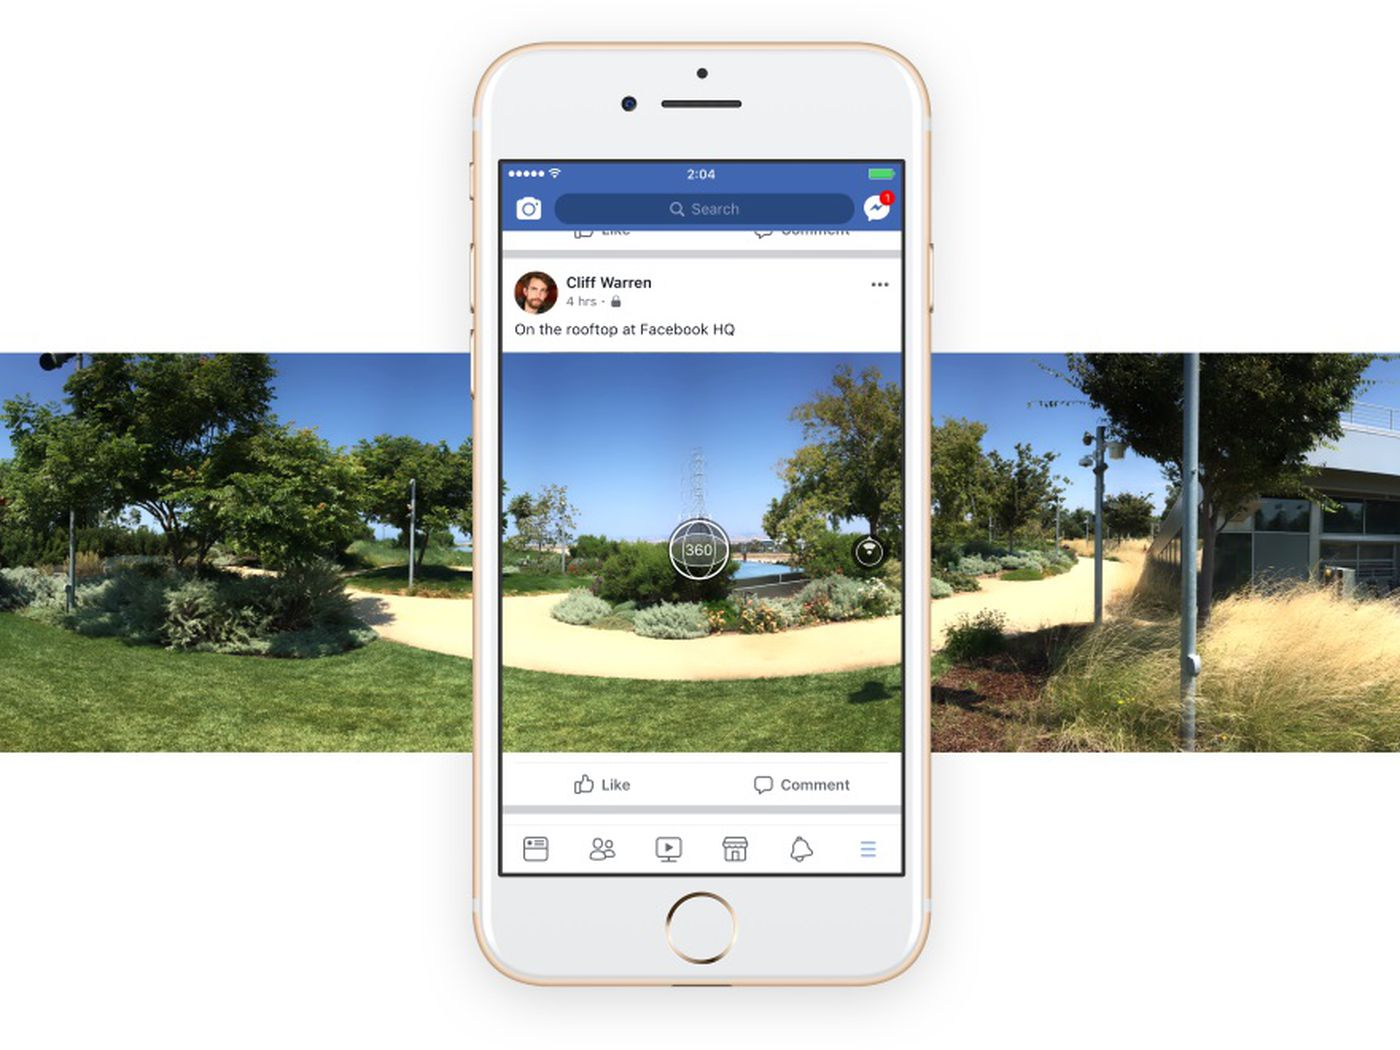 Facebook now lets you shoot 360-degree photos inside its app - The Verge